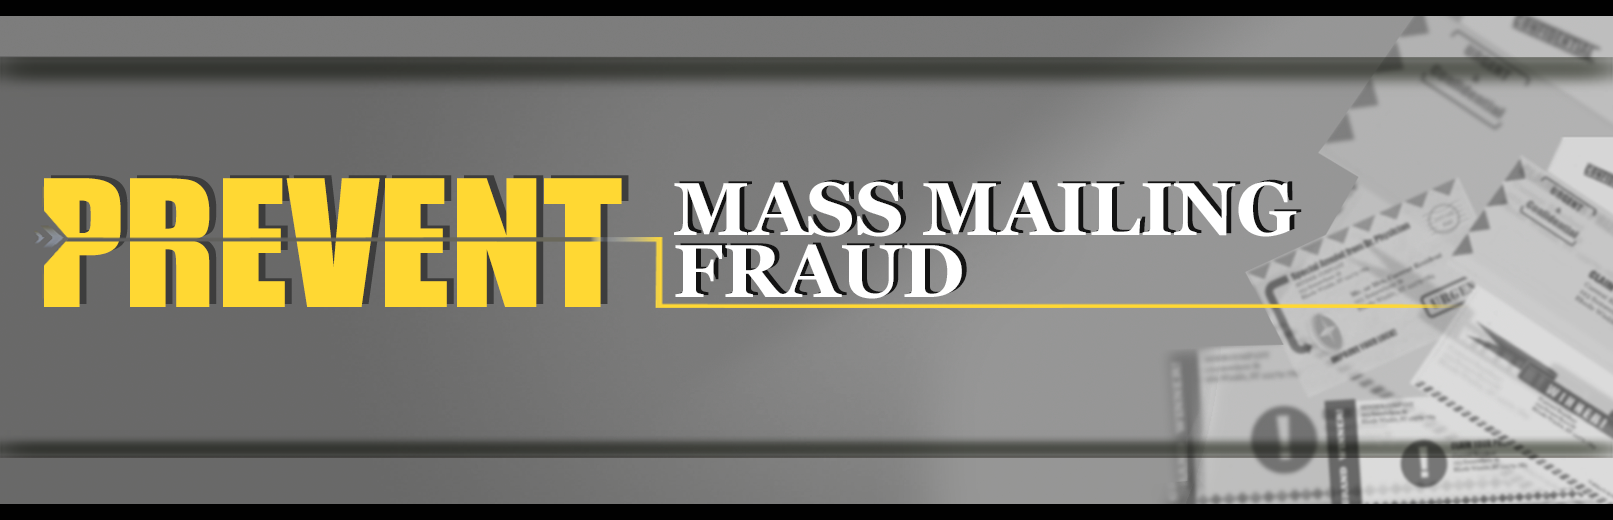 Prevent Mass Mail Fraud brought by Consumer Protection Branch